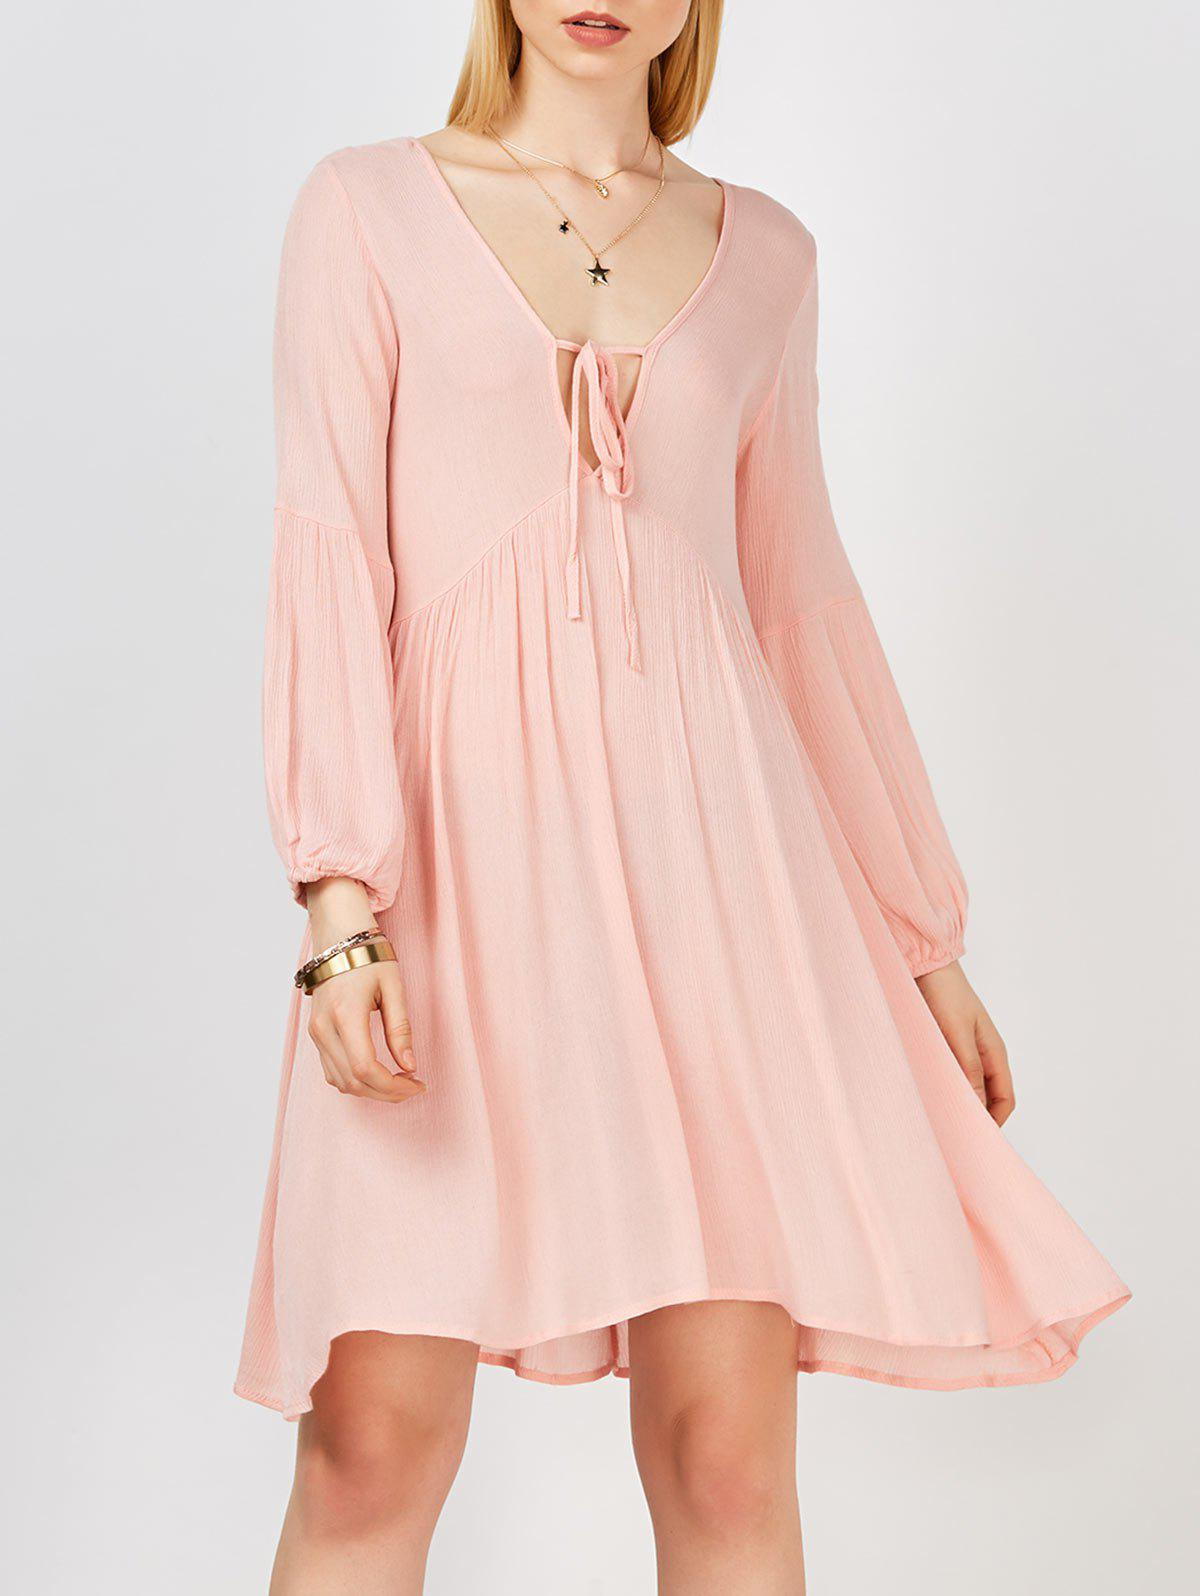 Shops Plunging Neck Self Tie Crinkled Casual Dress For Summer